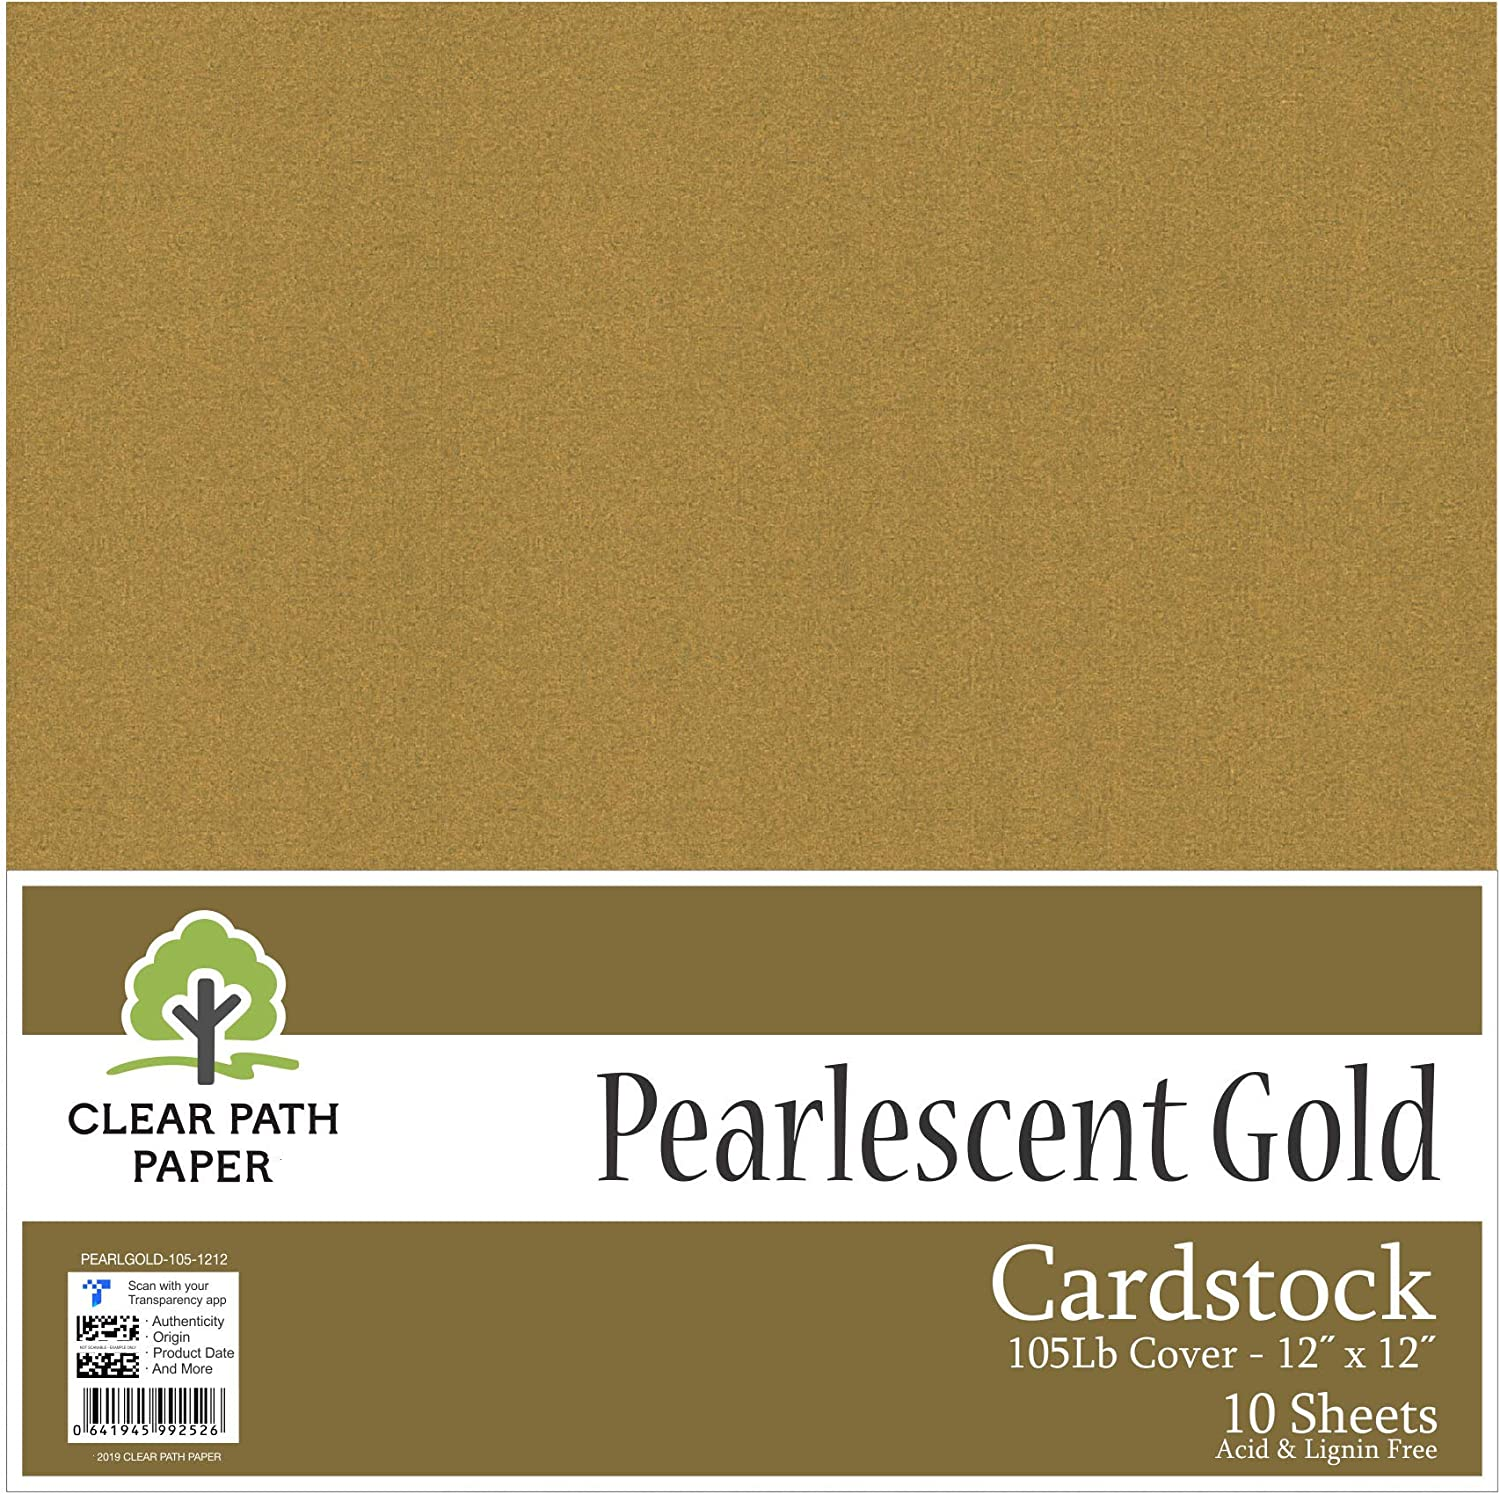 12x12 Electric Yellow Smooth Paper Cardstock 20 Sheets Scrapbook Crafts Arts 65#